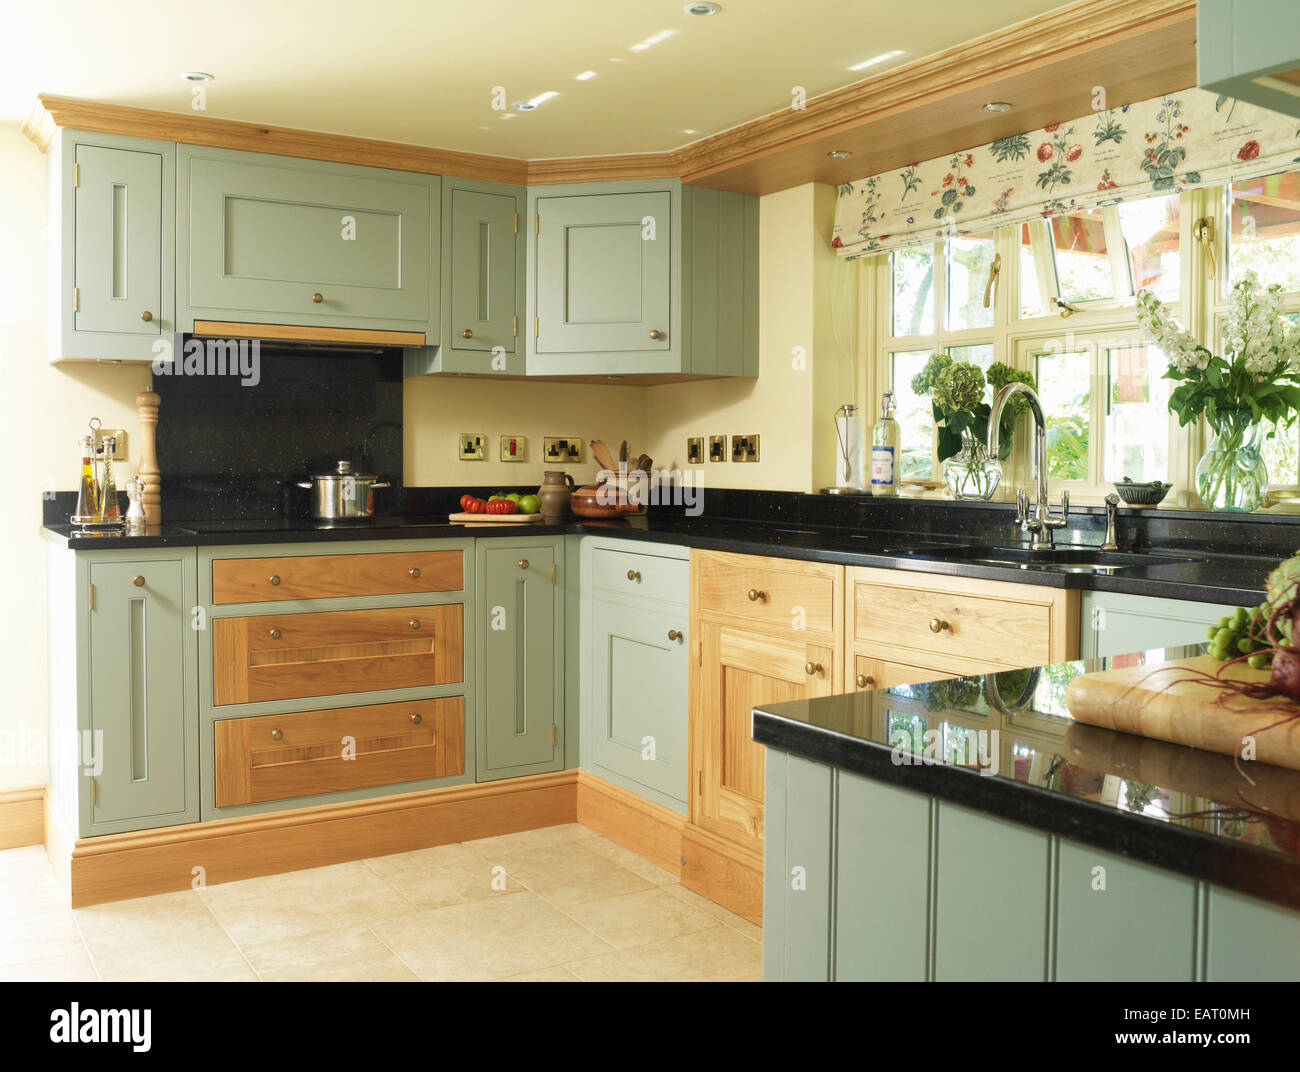 Country Style Kitchen With Green Fitted Units Stock Photo Alamy